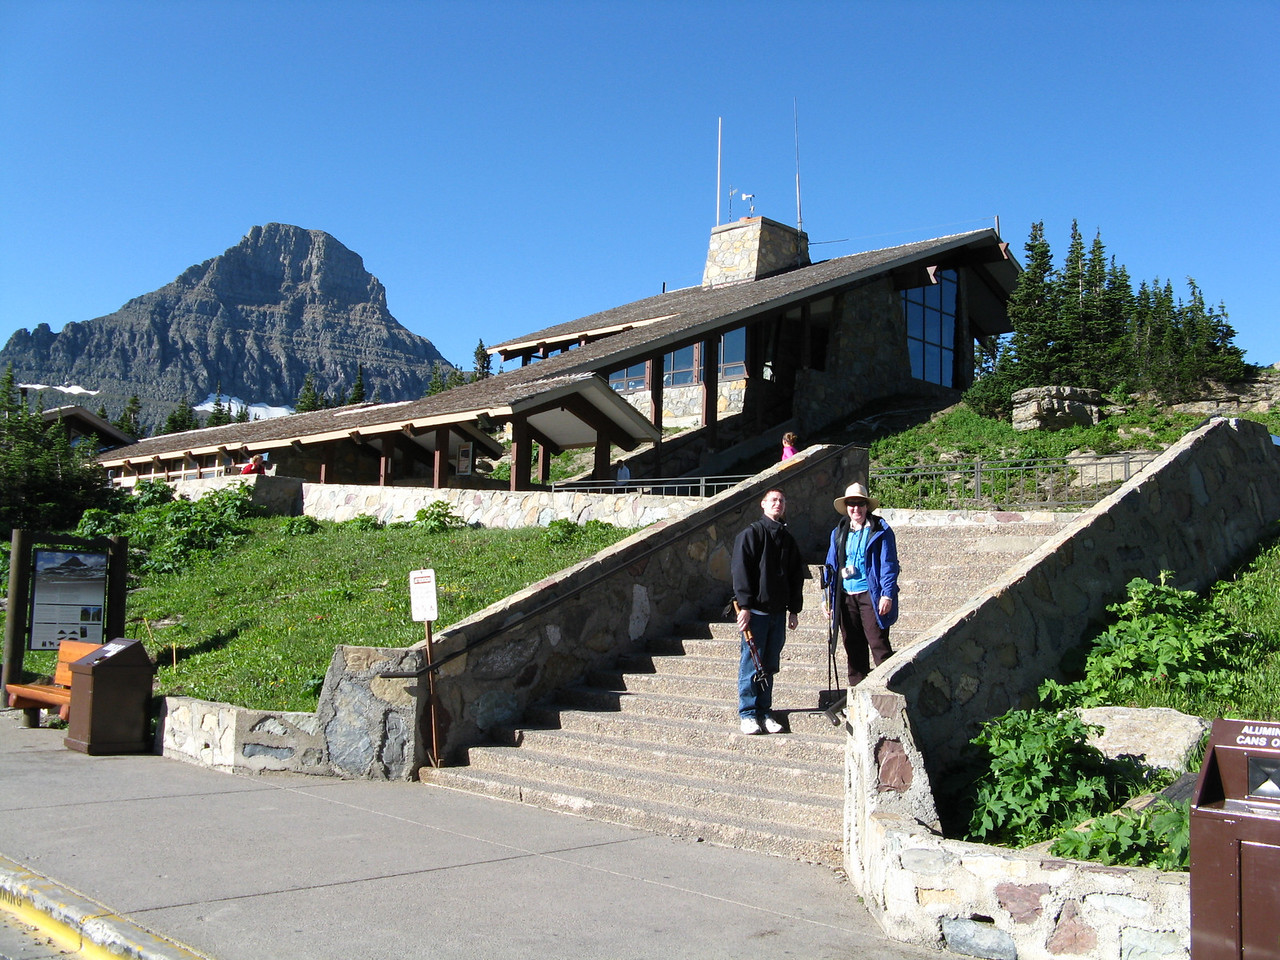 On Monday, August 4, 2008, we arrived at the Logan Pass Visitor Center early.  We had no trouble finding a parking space.